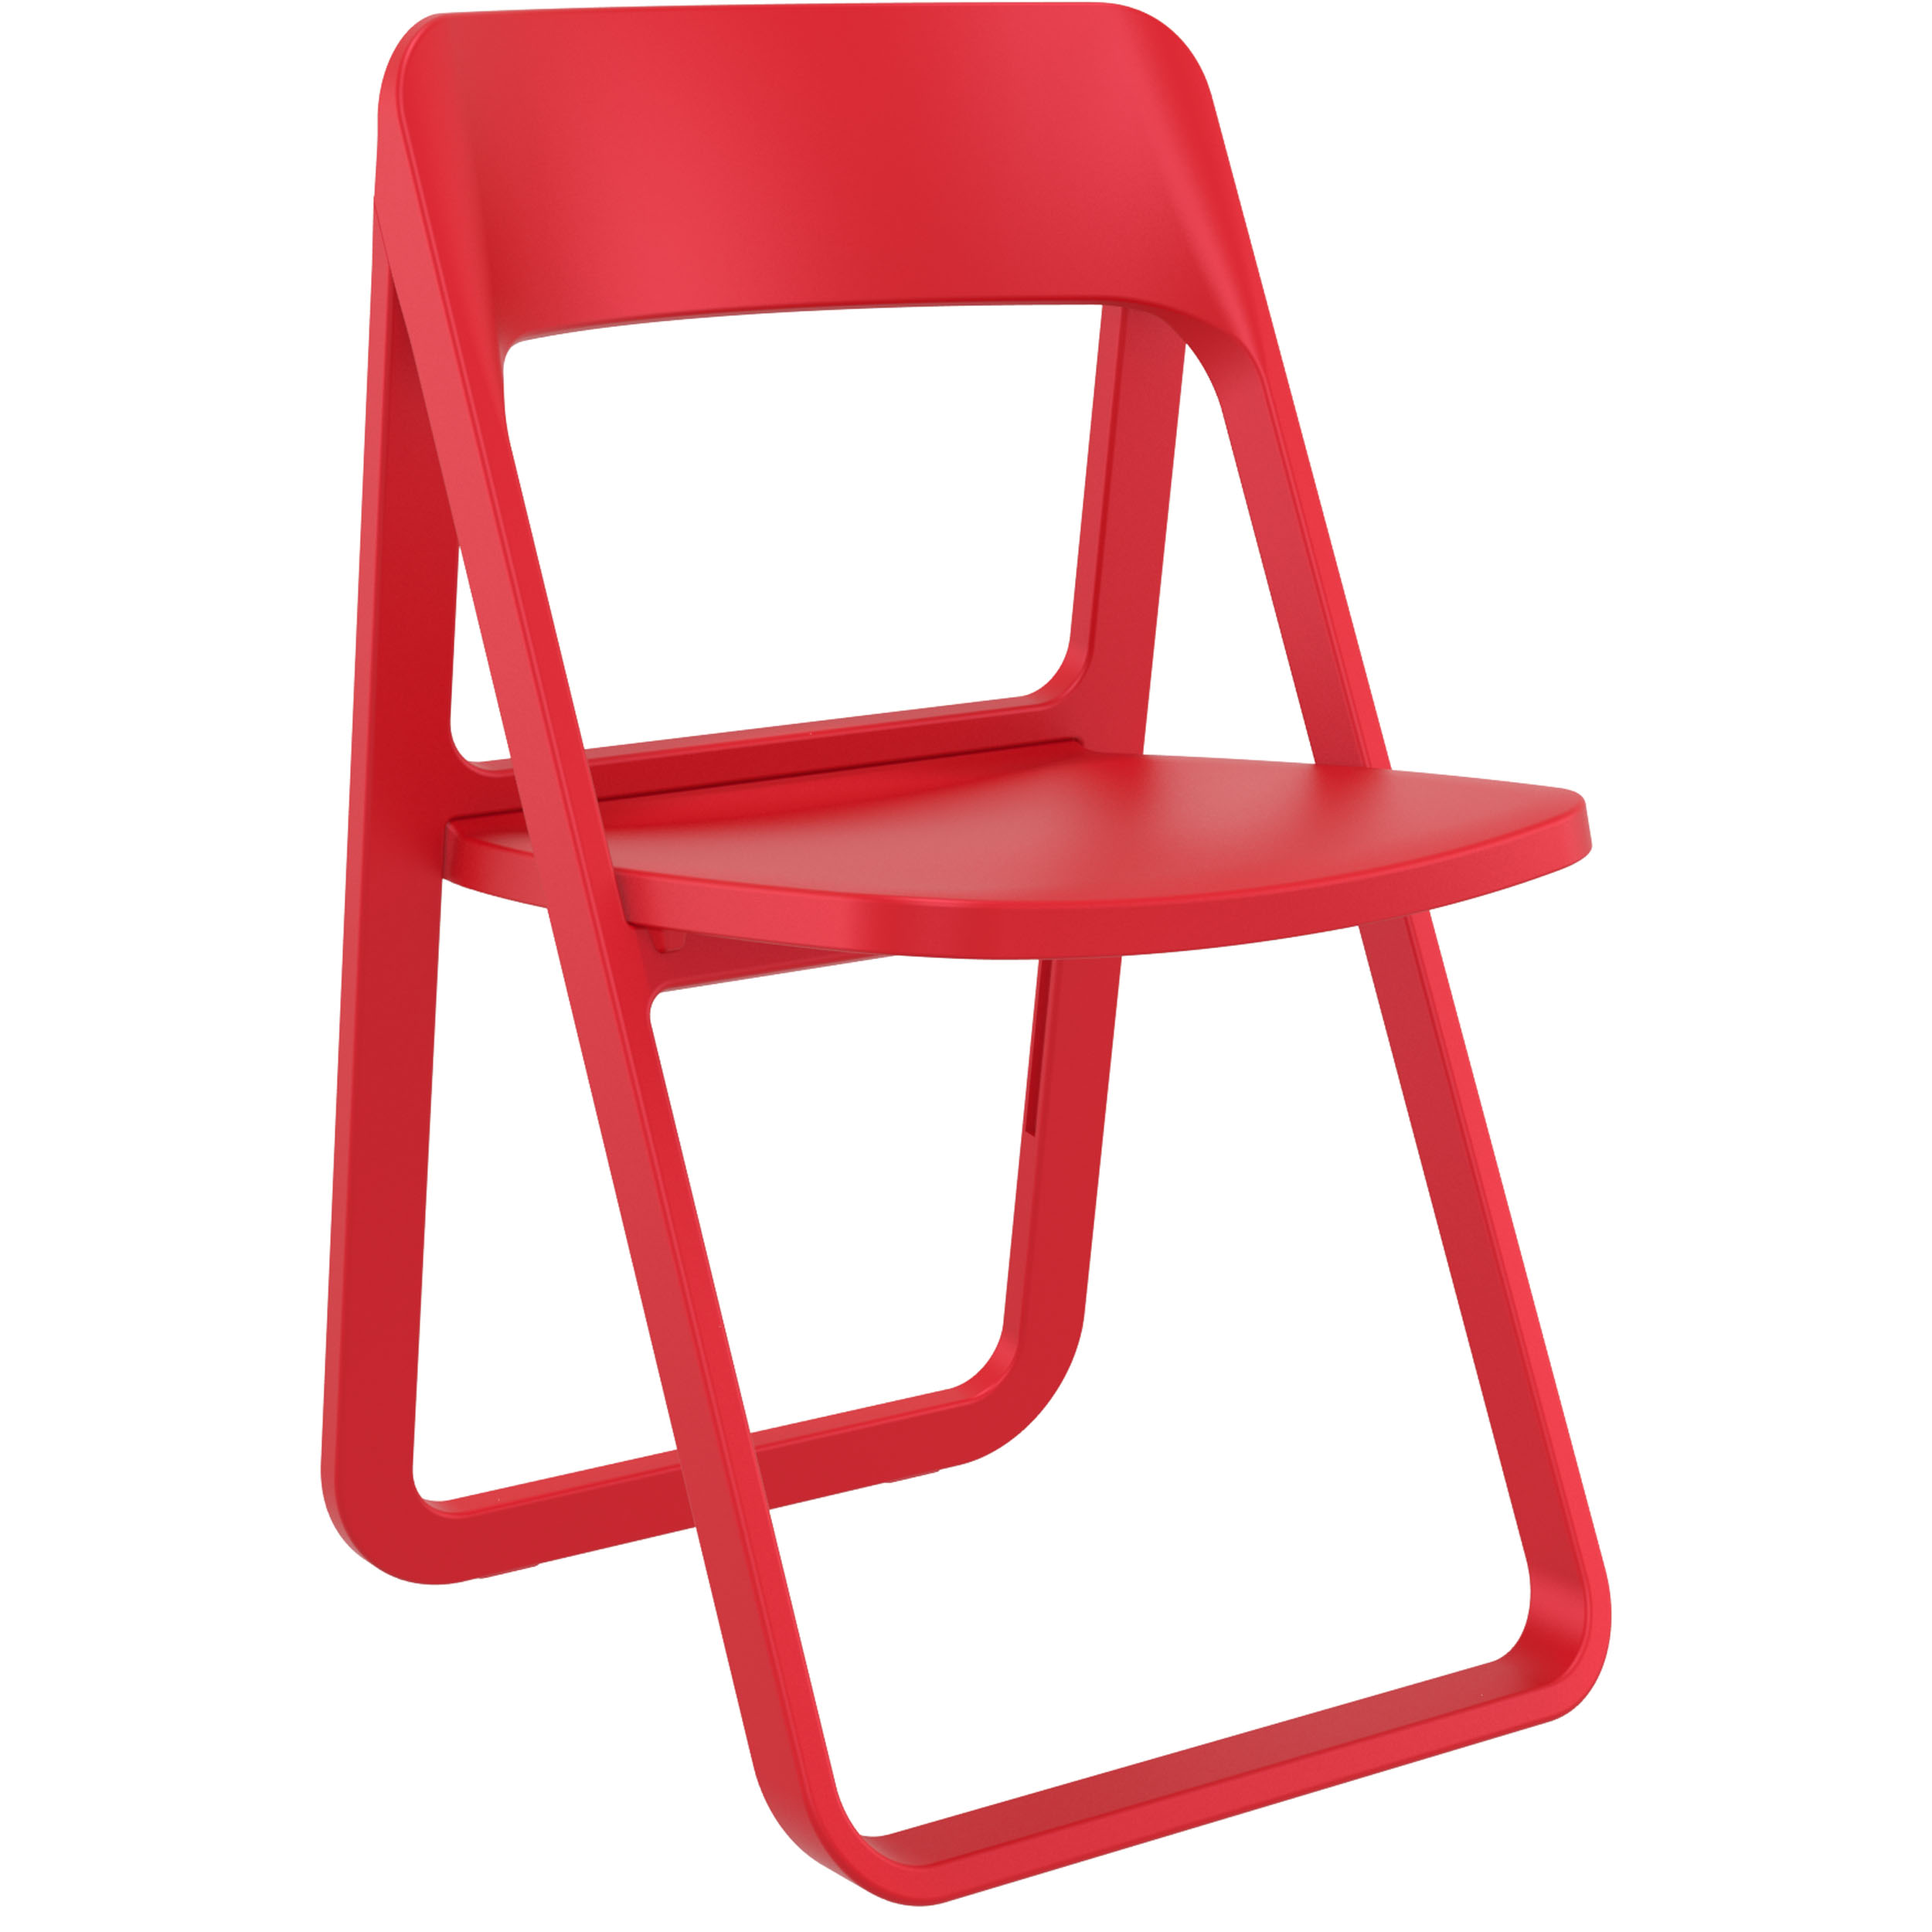 Dream Folding Chair